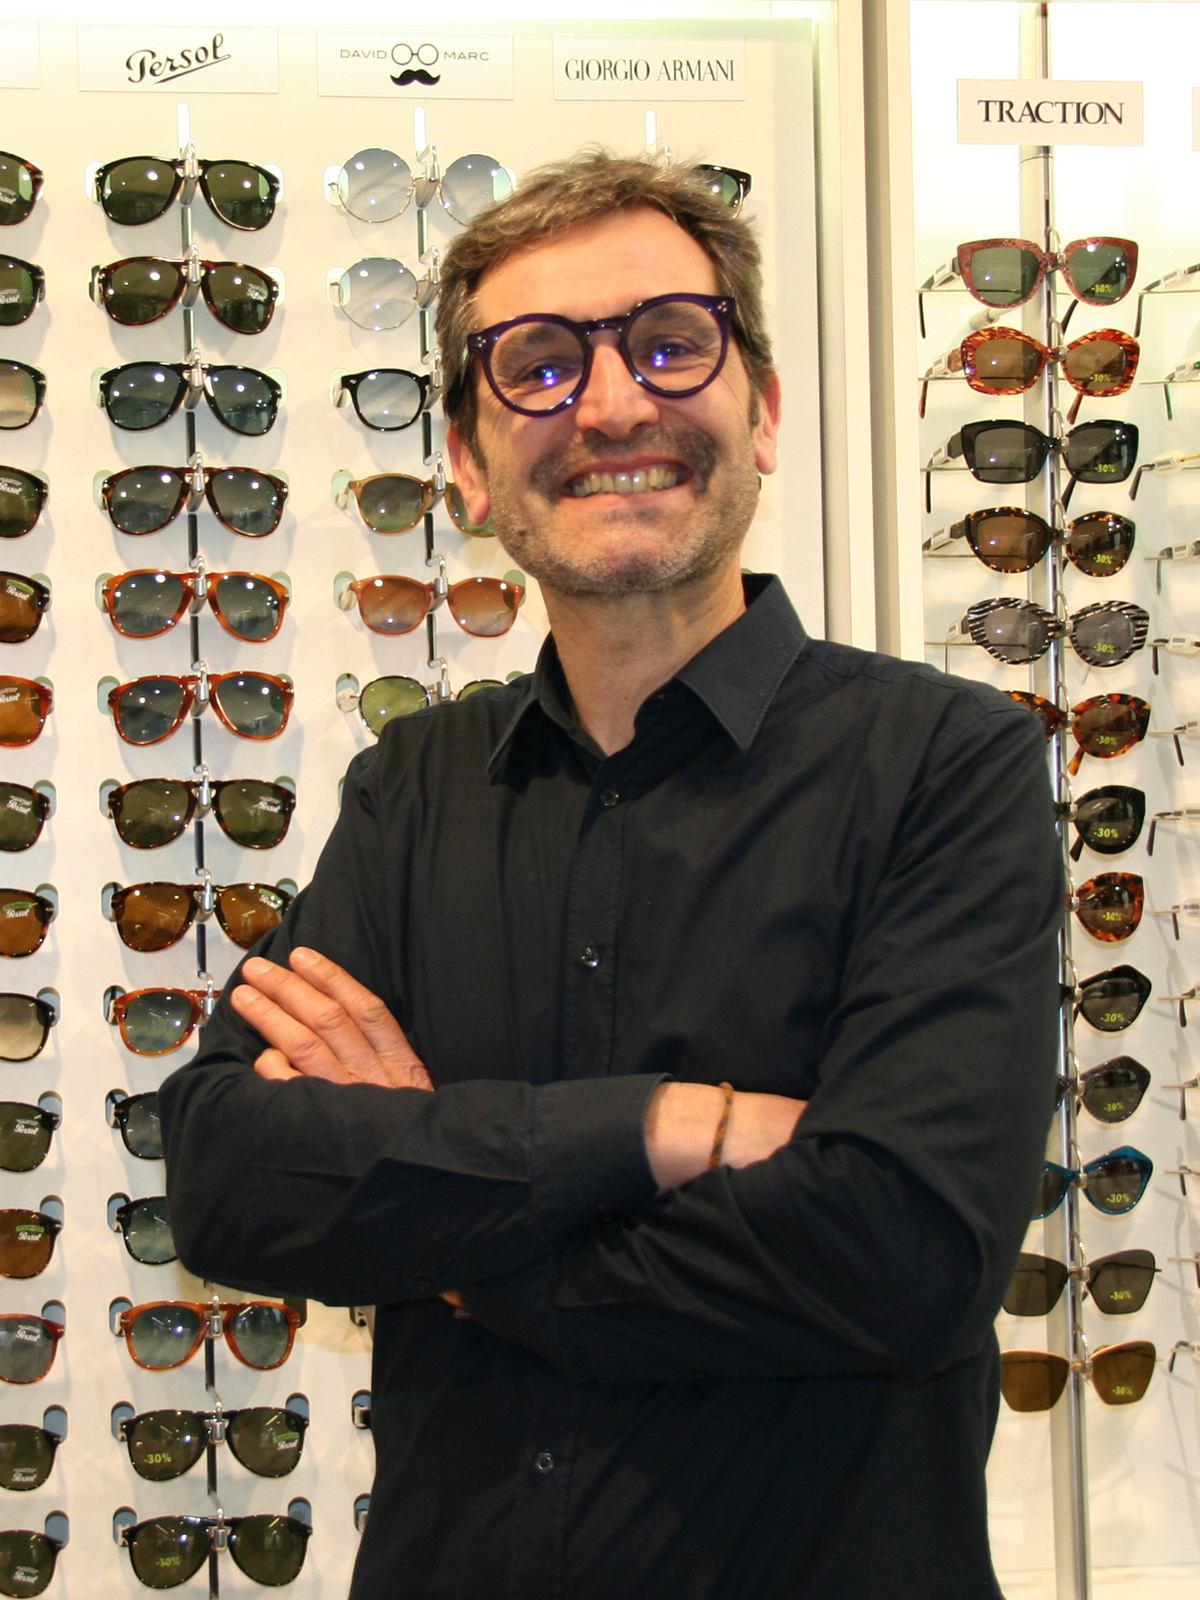 thierry stefanini opticien lyon 2